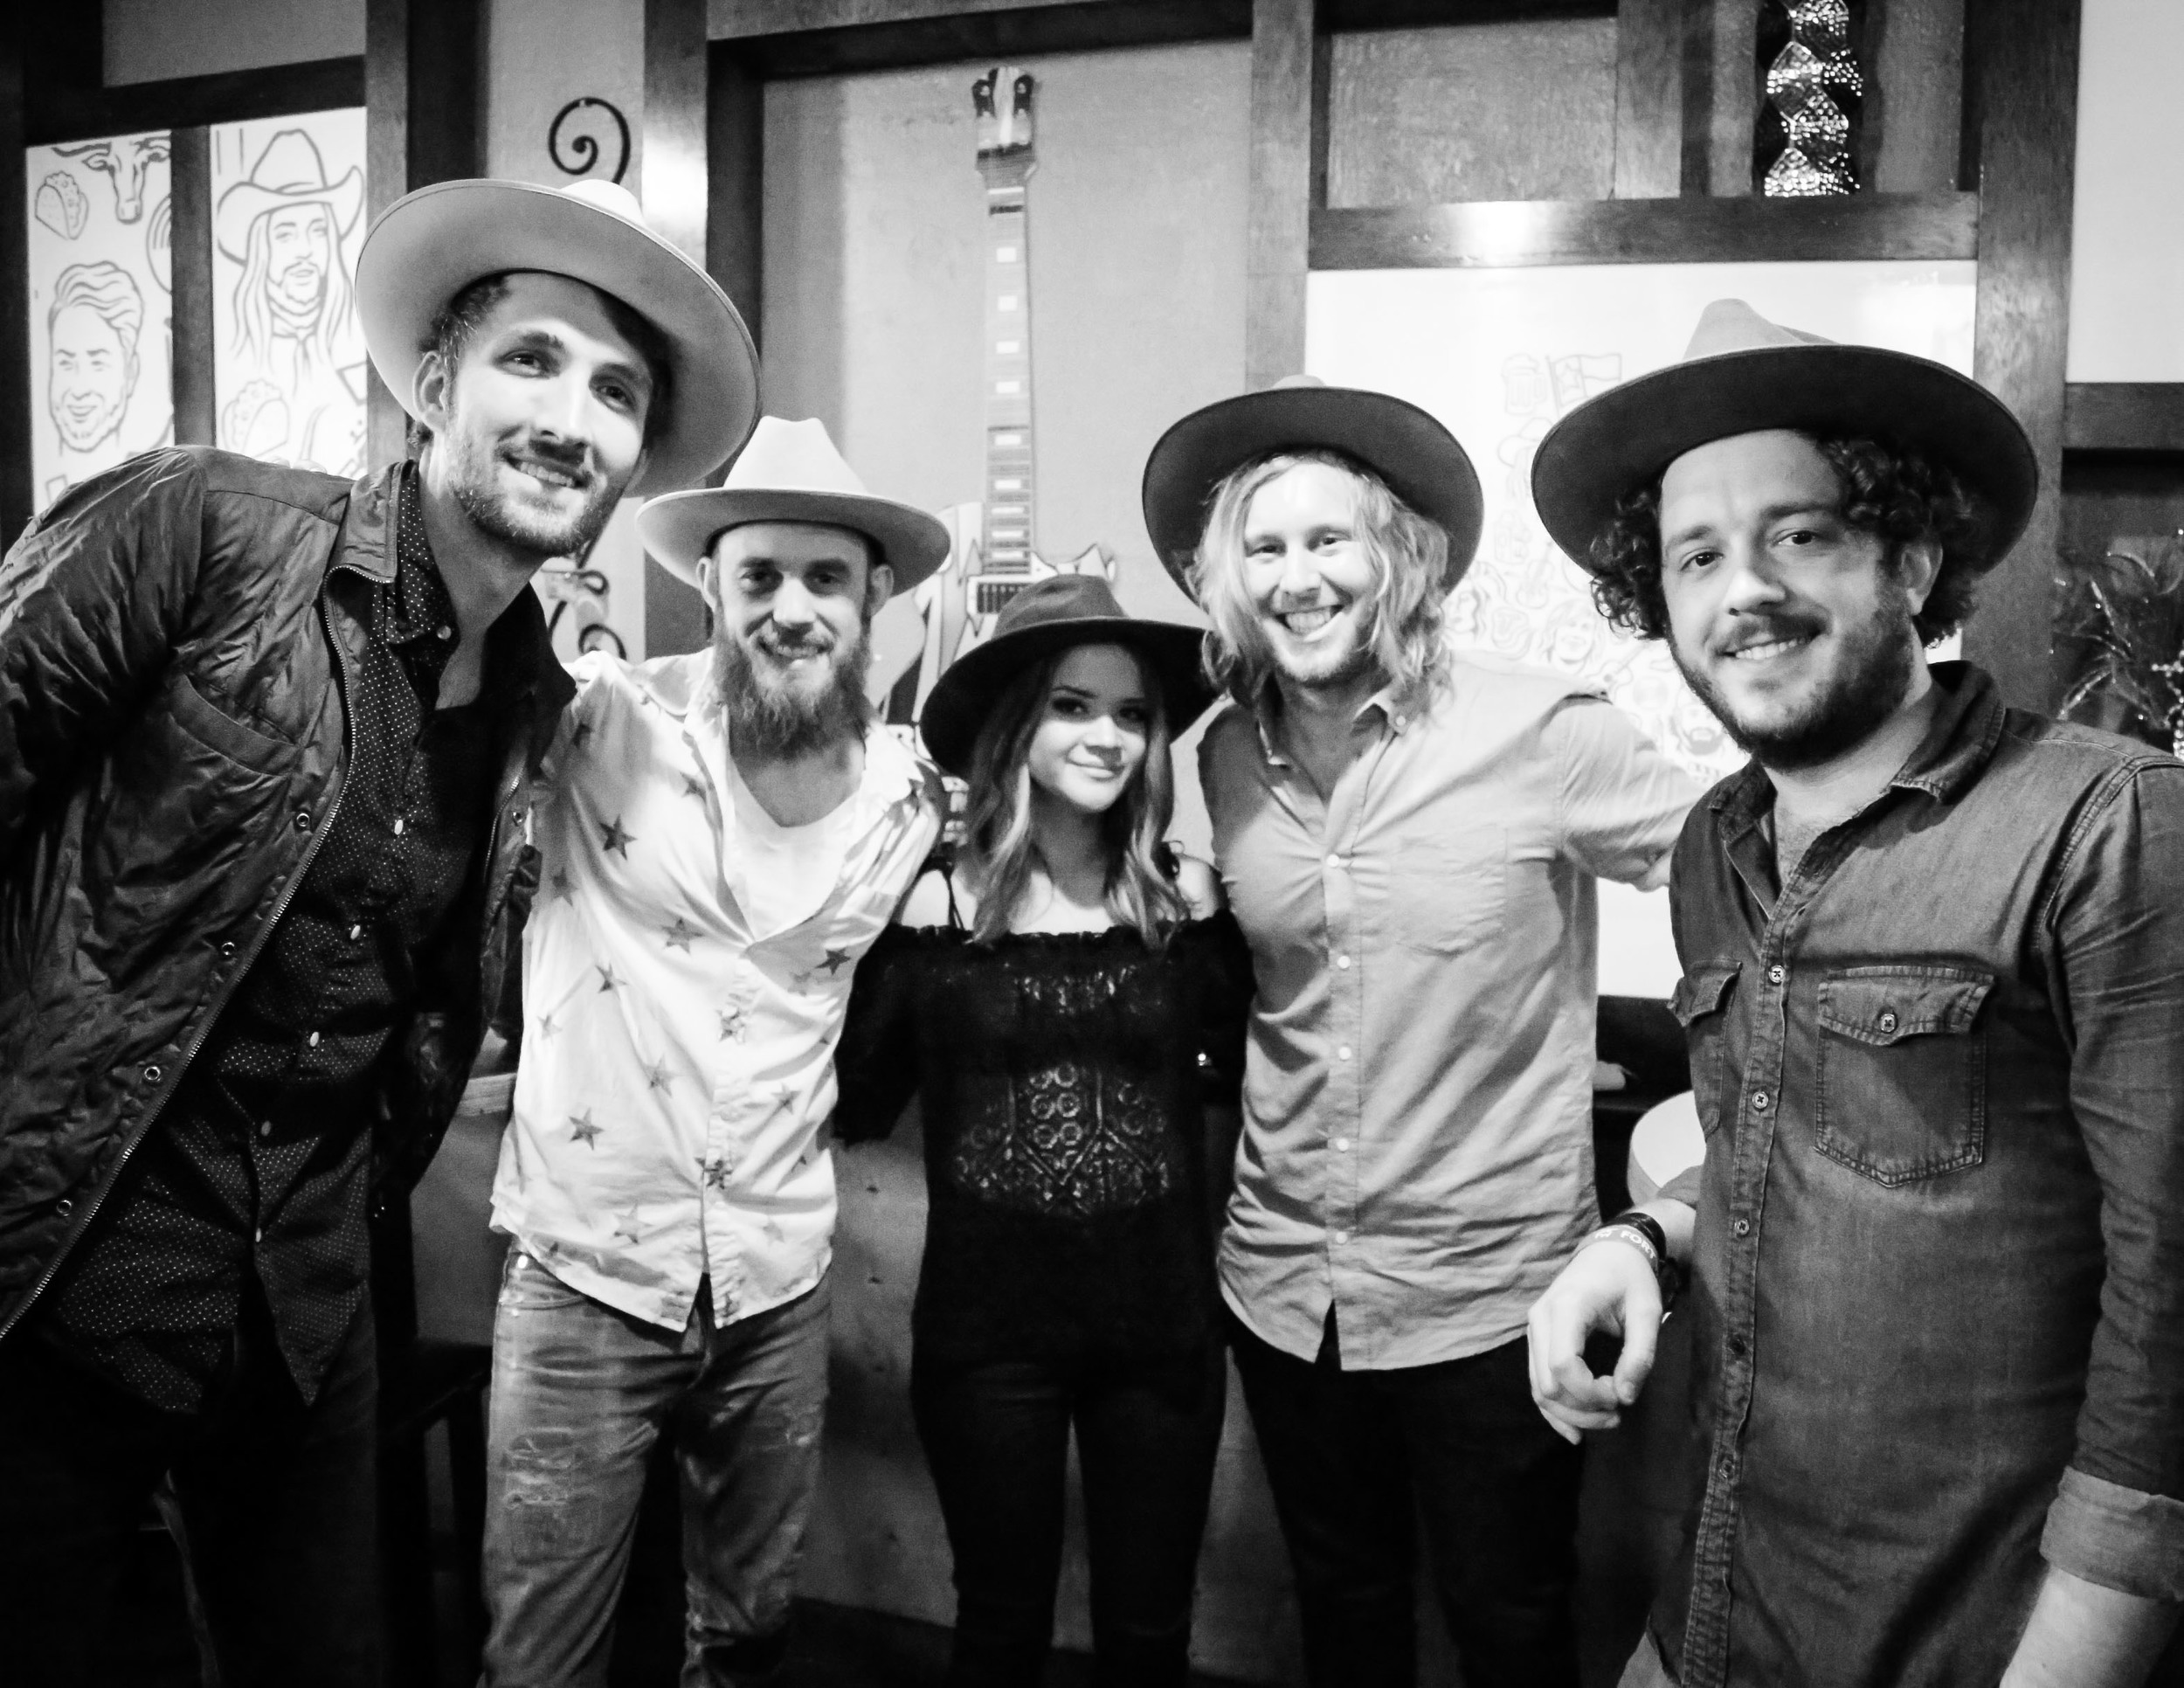 Fellow Fort Worthian & country star Maren Morris at the Hear Fort Worth Showcase. Maren is now on the road with Keith Urban!